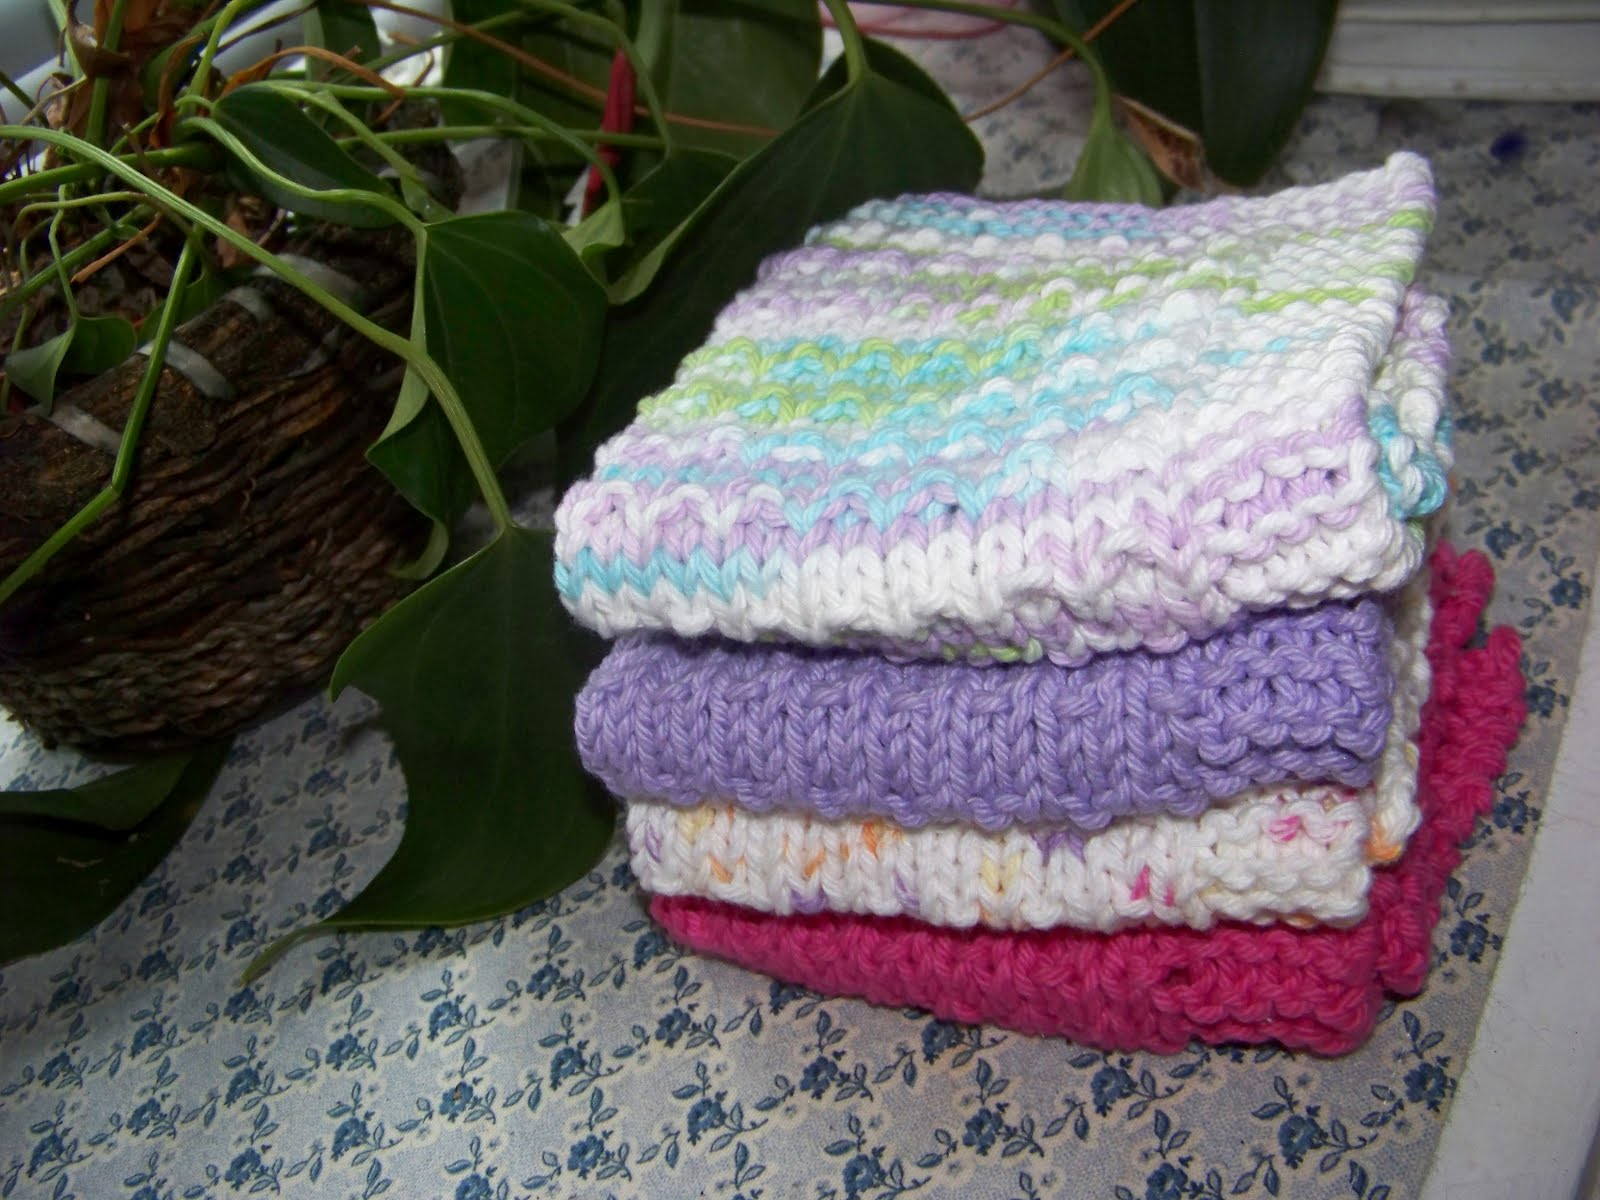 Easy Dishcloth Knitting Pattern For Beginners : Berkshire cottage easy dishcloth knitting pattern